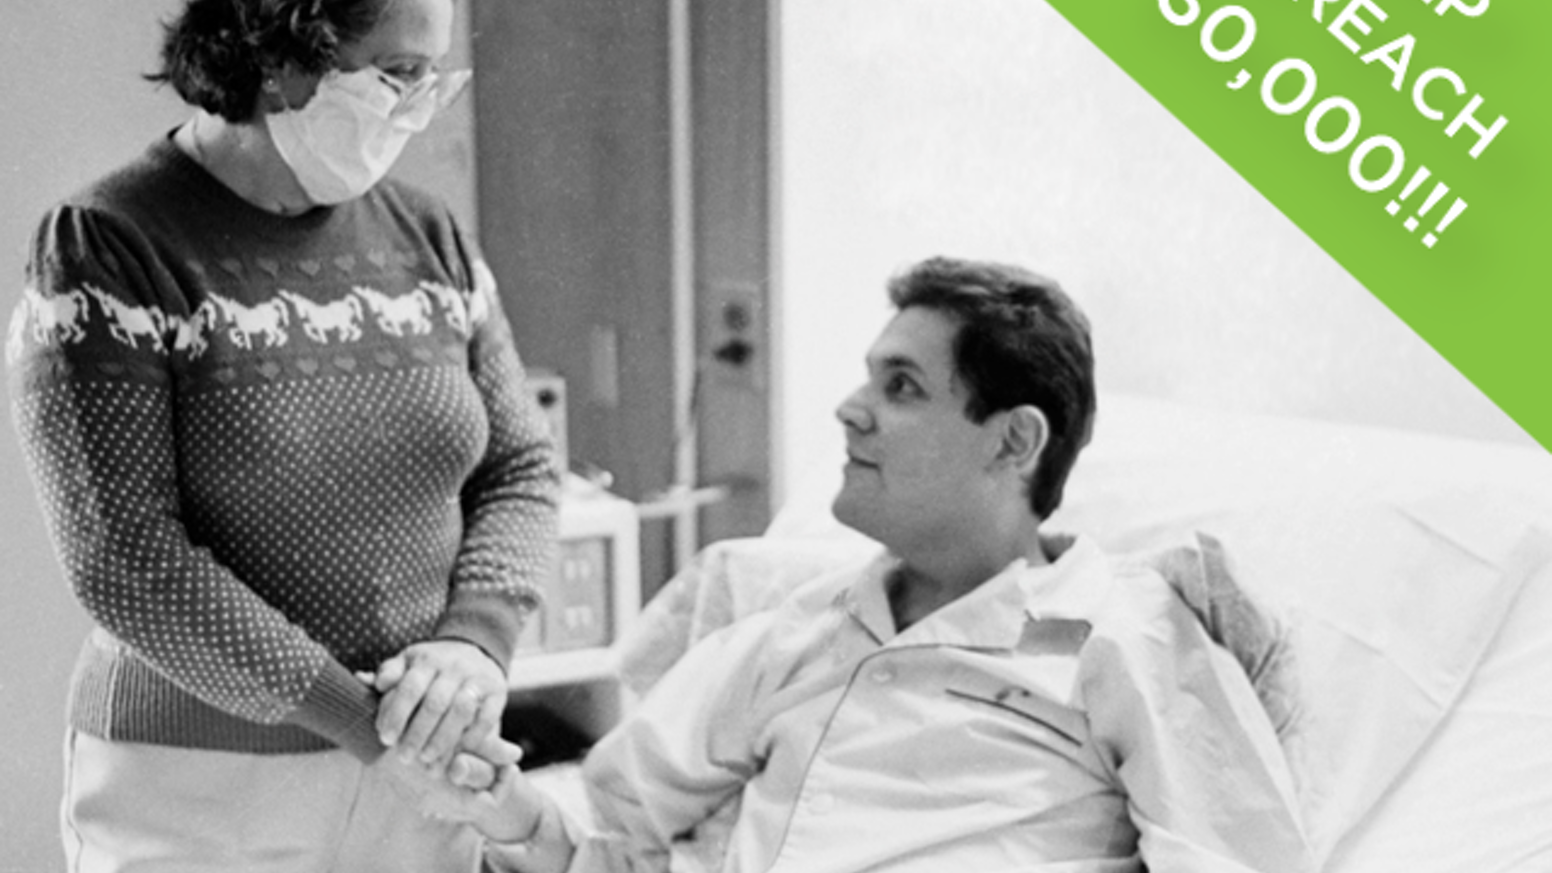 Twenty-five years after Miguel died of AIDS, his niece tracks down his estranged lover and cracks open aPandora's box of unresolved family drama.